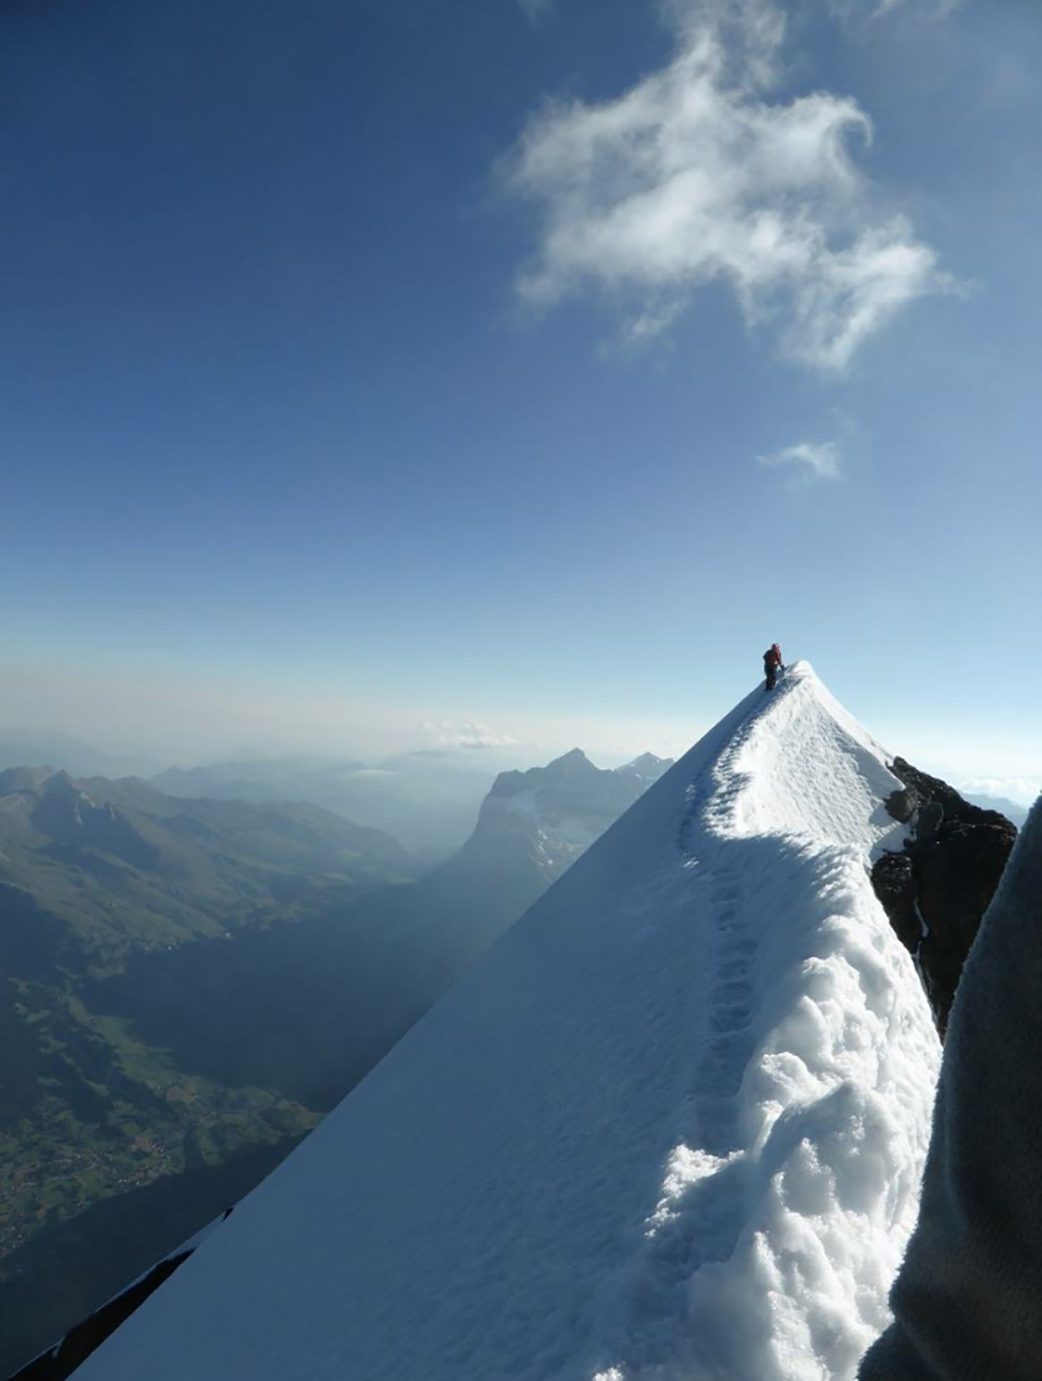 Taken from the summit of the Eiger on August 28, 2016, this photo shows the exposure of the narrow ridge that forms the Eiger, which is the last traverse before you reach the summit. PHOTO: Captain Antoine Labranche